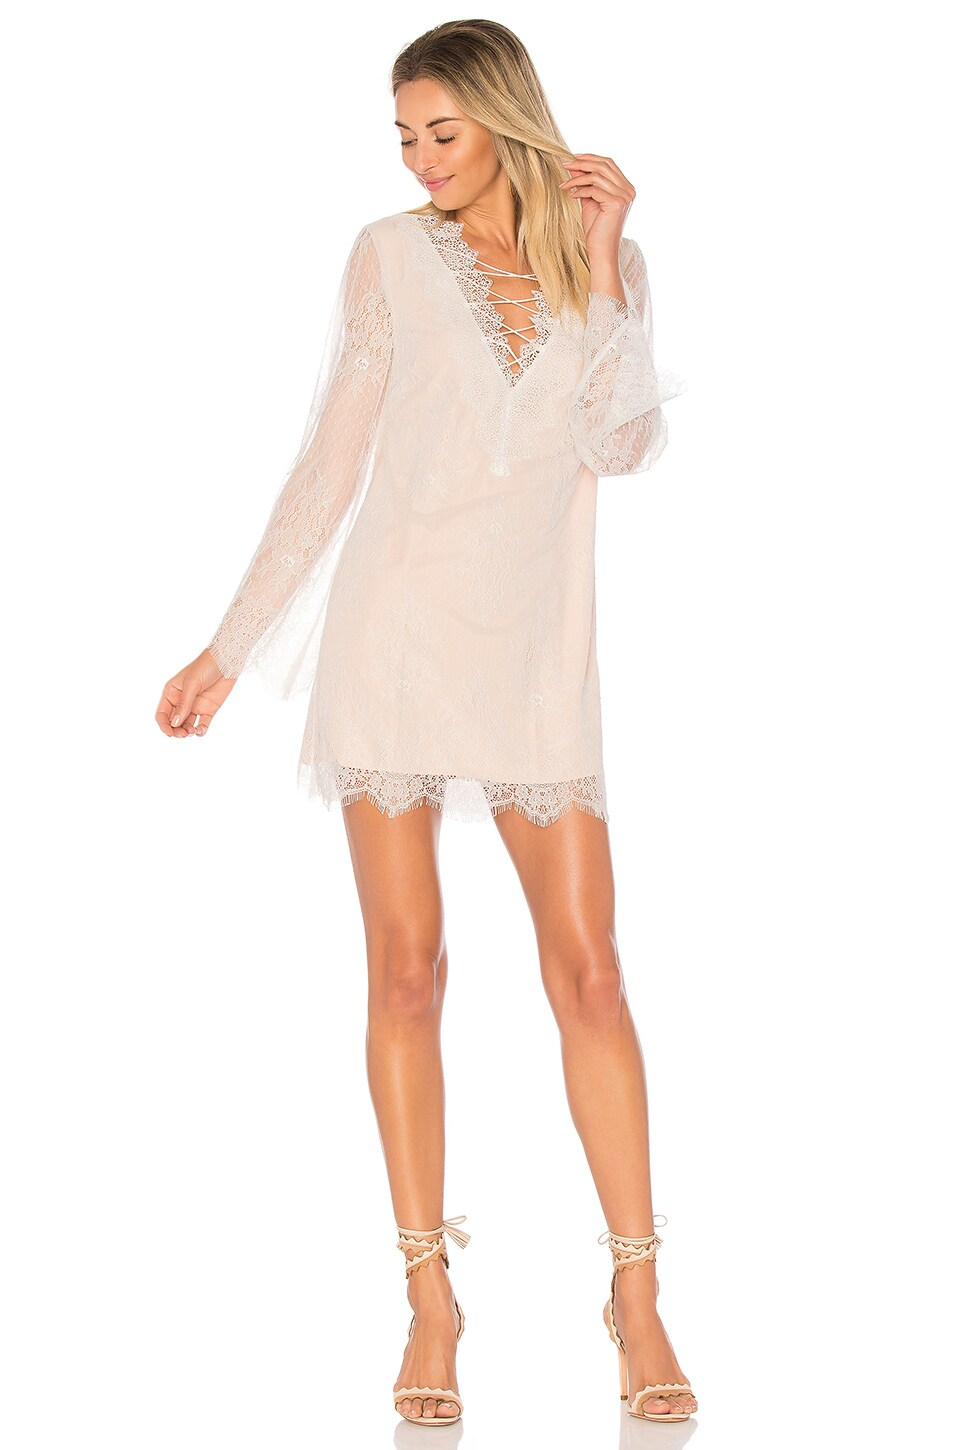 The Charlotte Dress by CAMI NYC